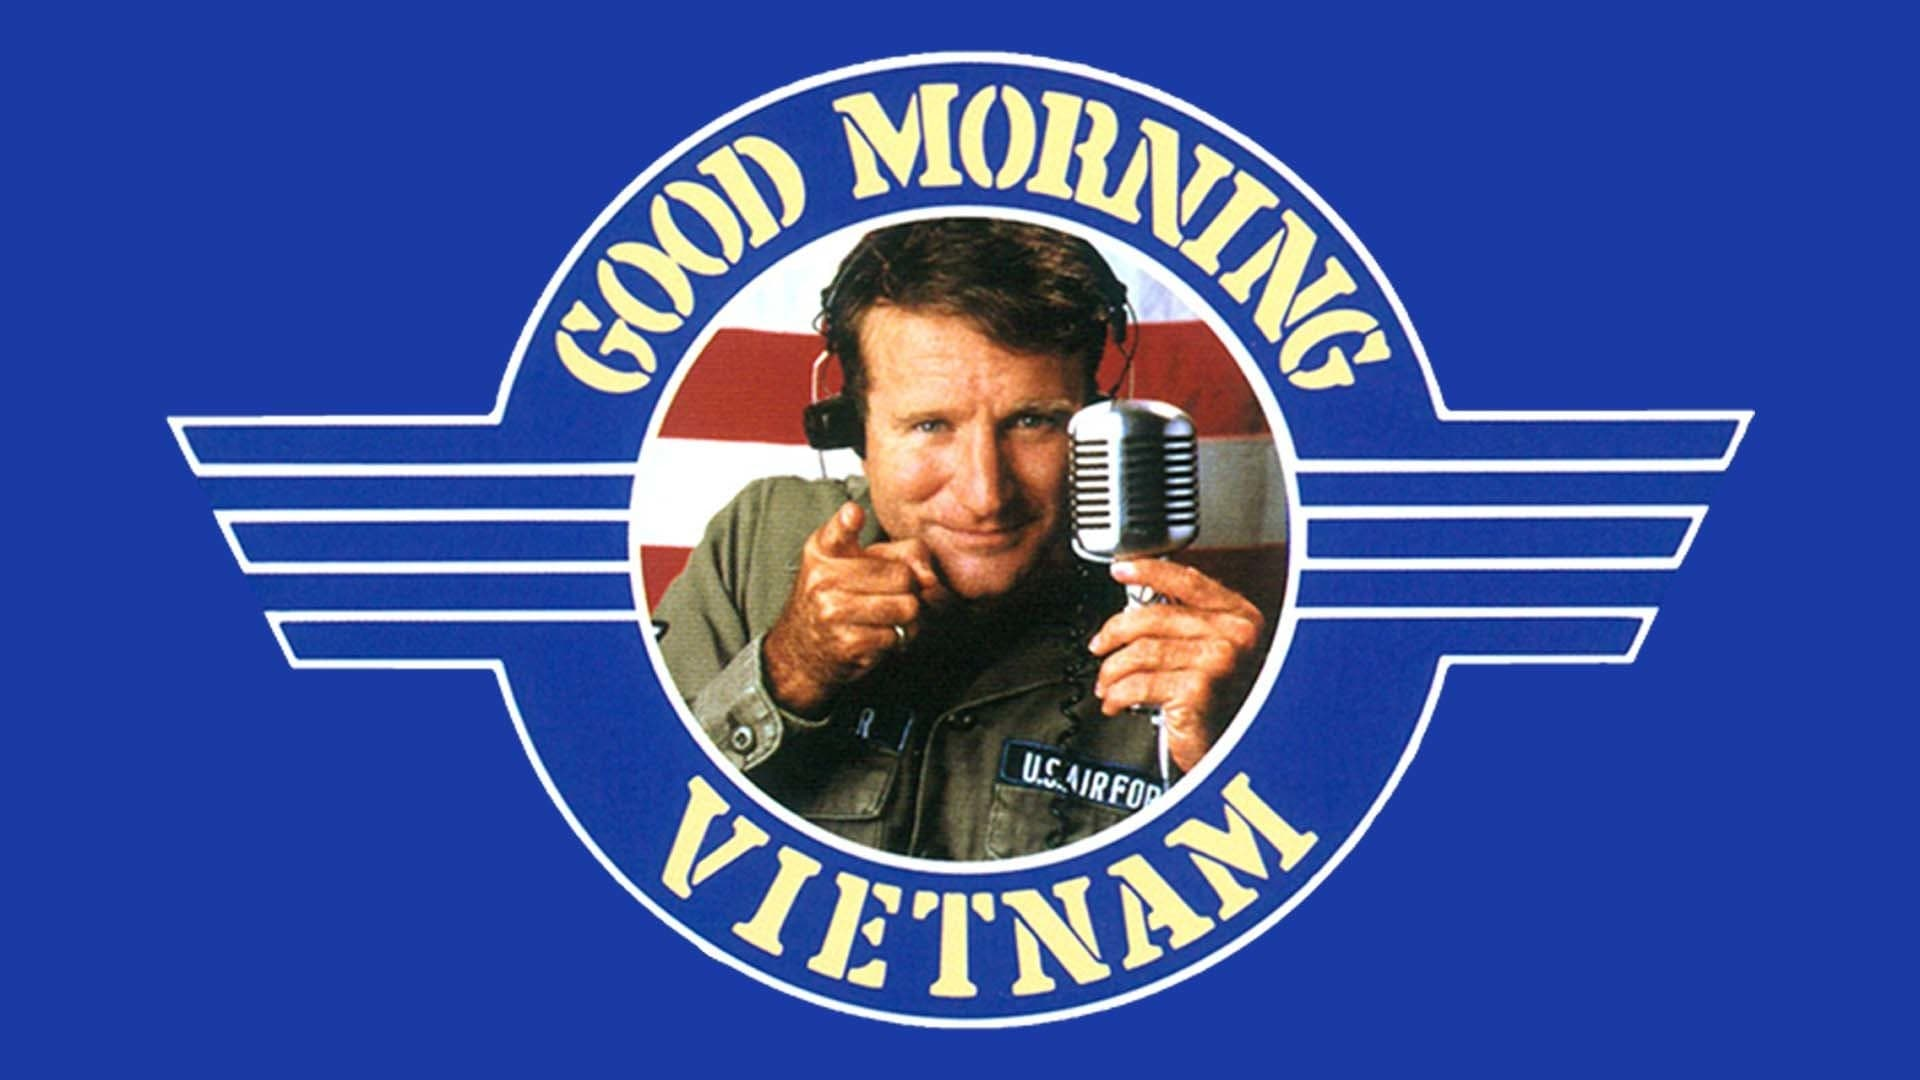 Good Morning Vietnam Writer : Good morning vietnam the movie